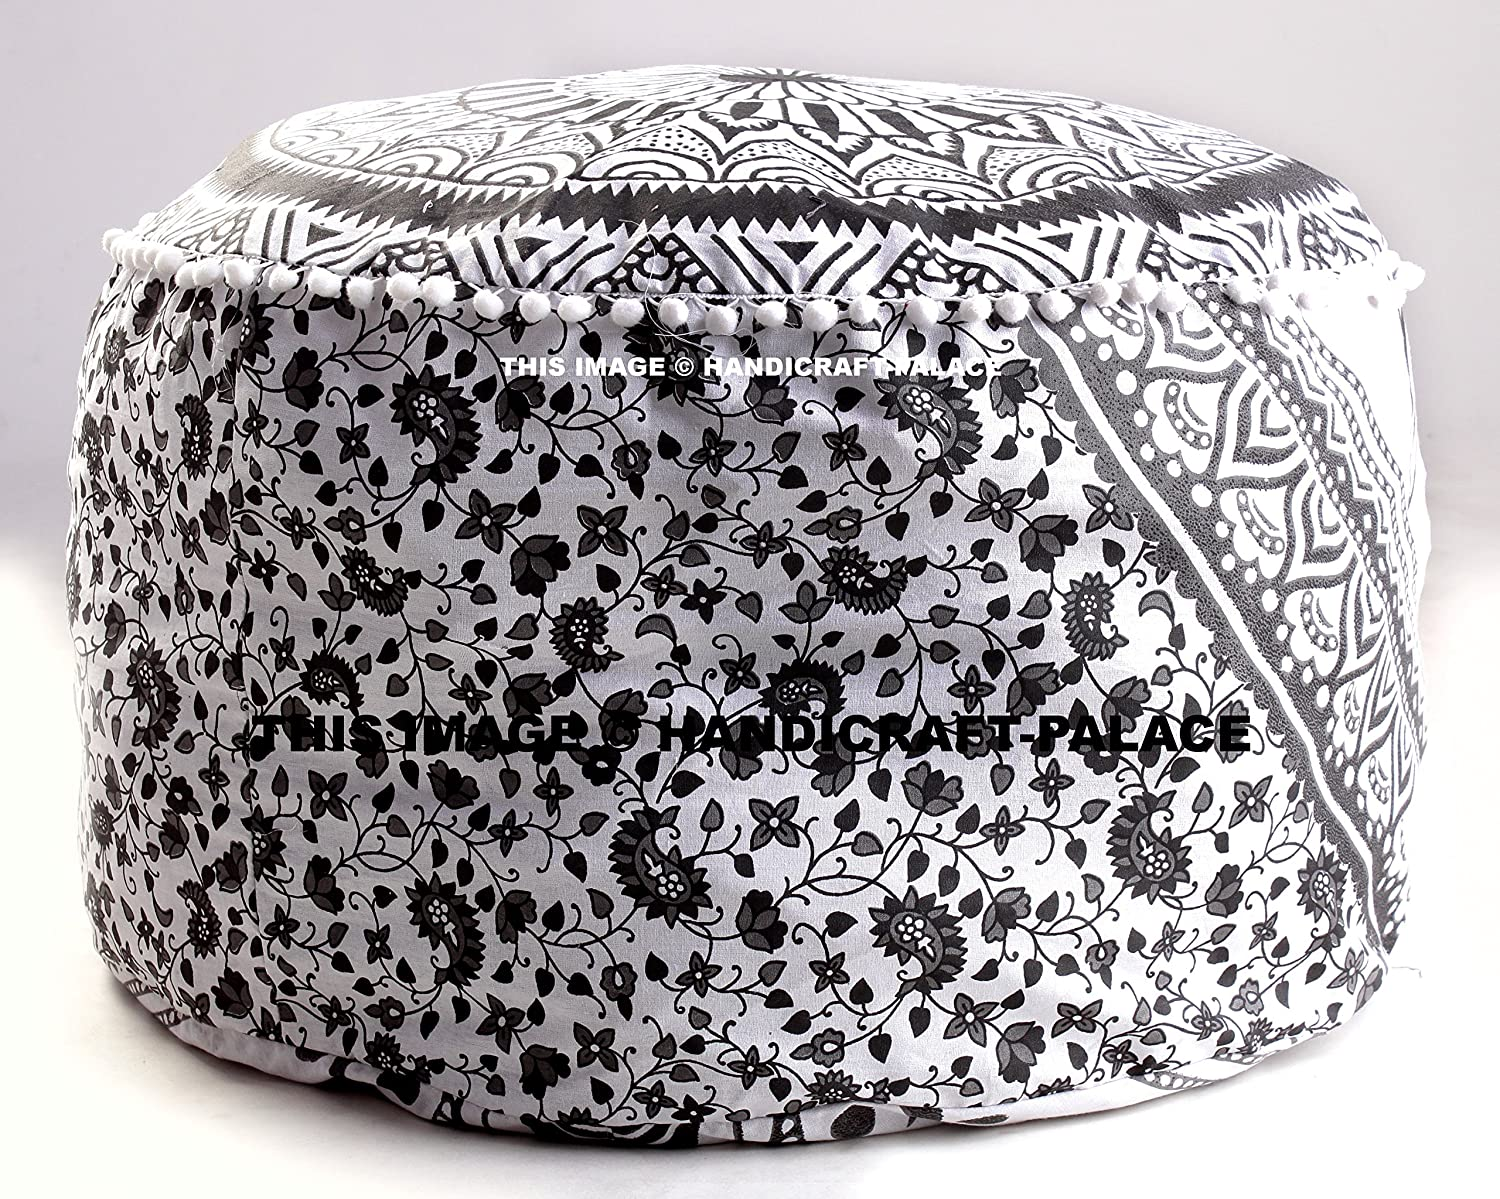 Large Bohemian Pouf Ottoman Mandala Footstool Round Floor Pillow Ottoman Living Room Indian pouf Cover Throw 24